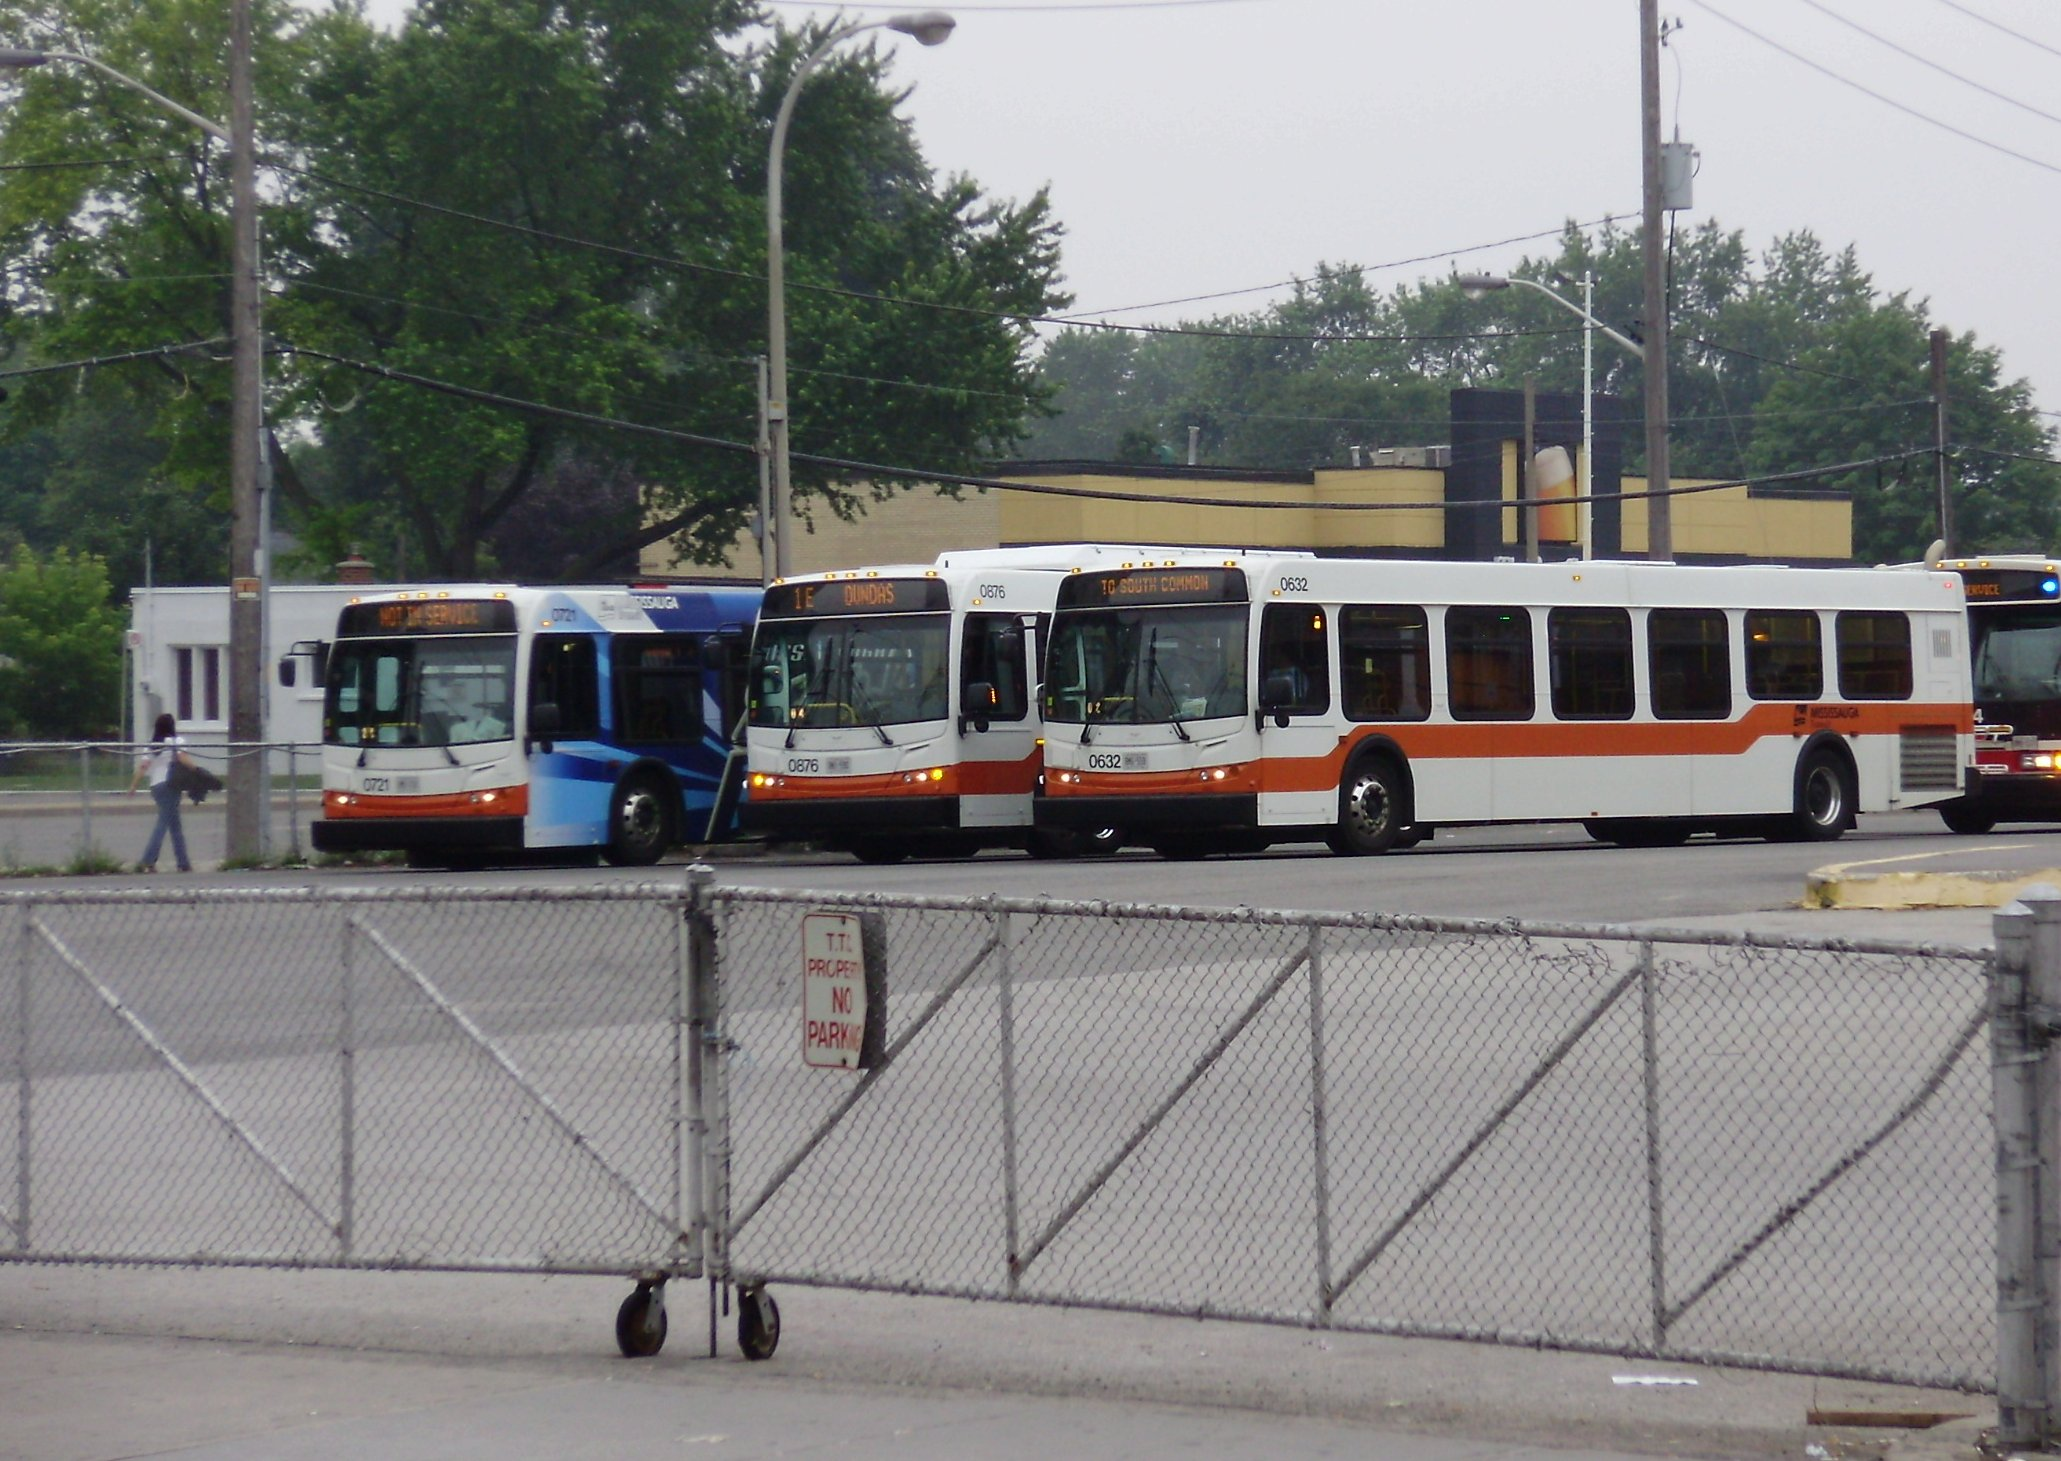 File:Mississauga Transit Buses at Islington.jpg - Wikipedia, the ...